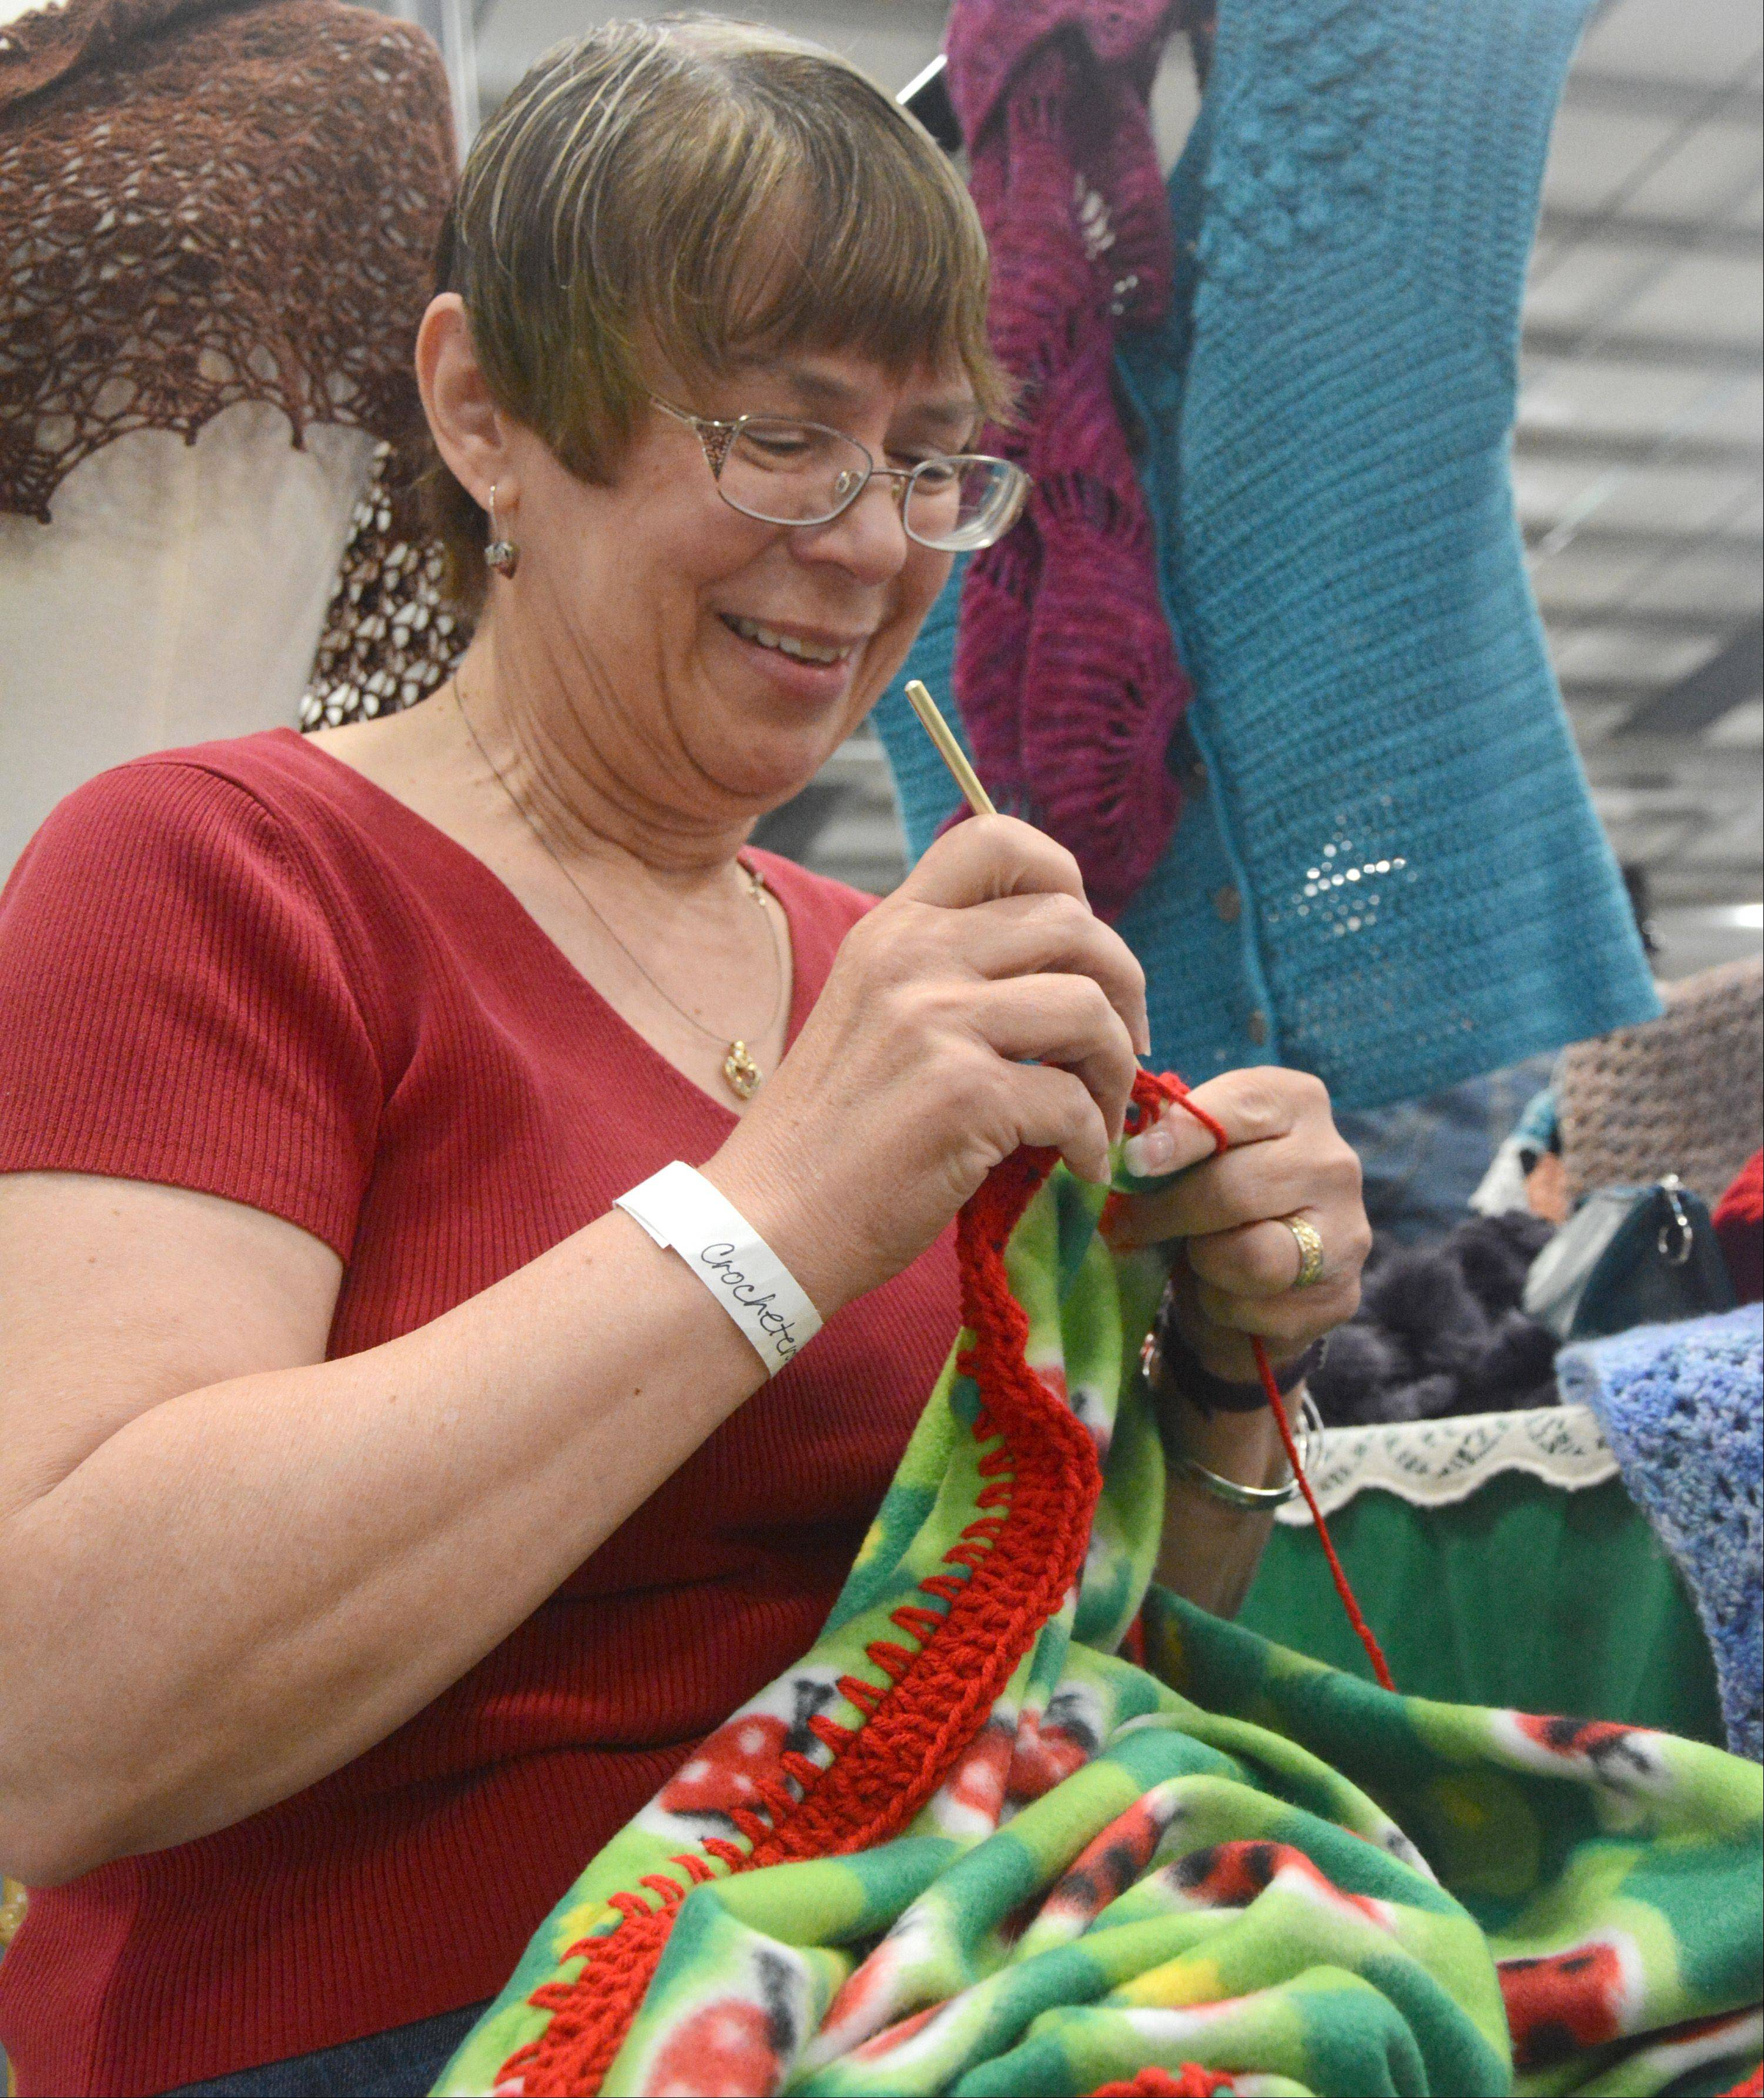 Karen Edgecombe of Lakemoor, a member of Crocheters of the Lakes, makes a blanket for Project Linus, which provides blankets for critically ill children.